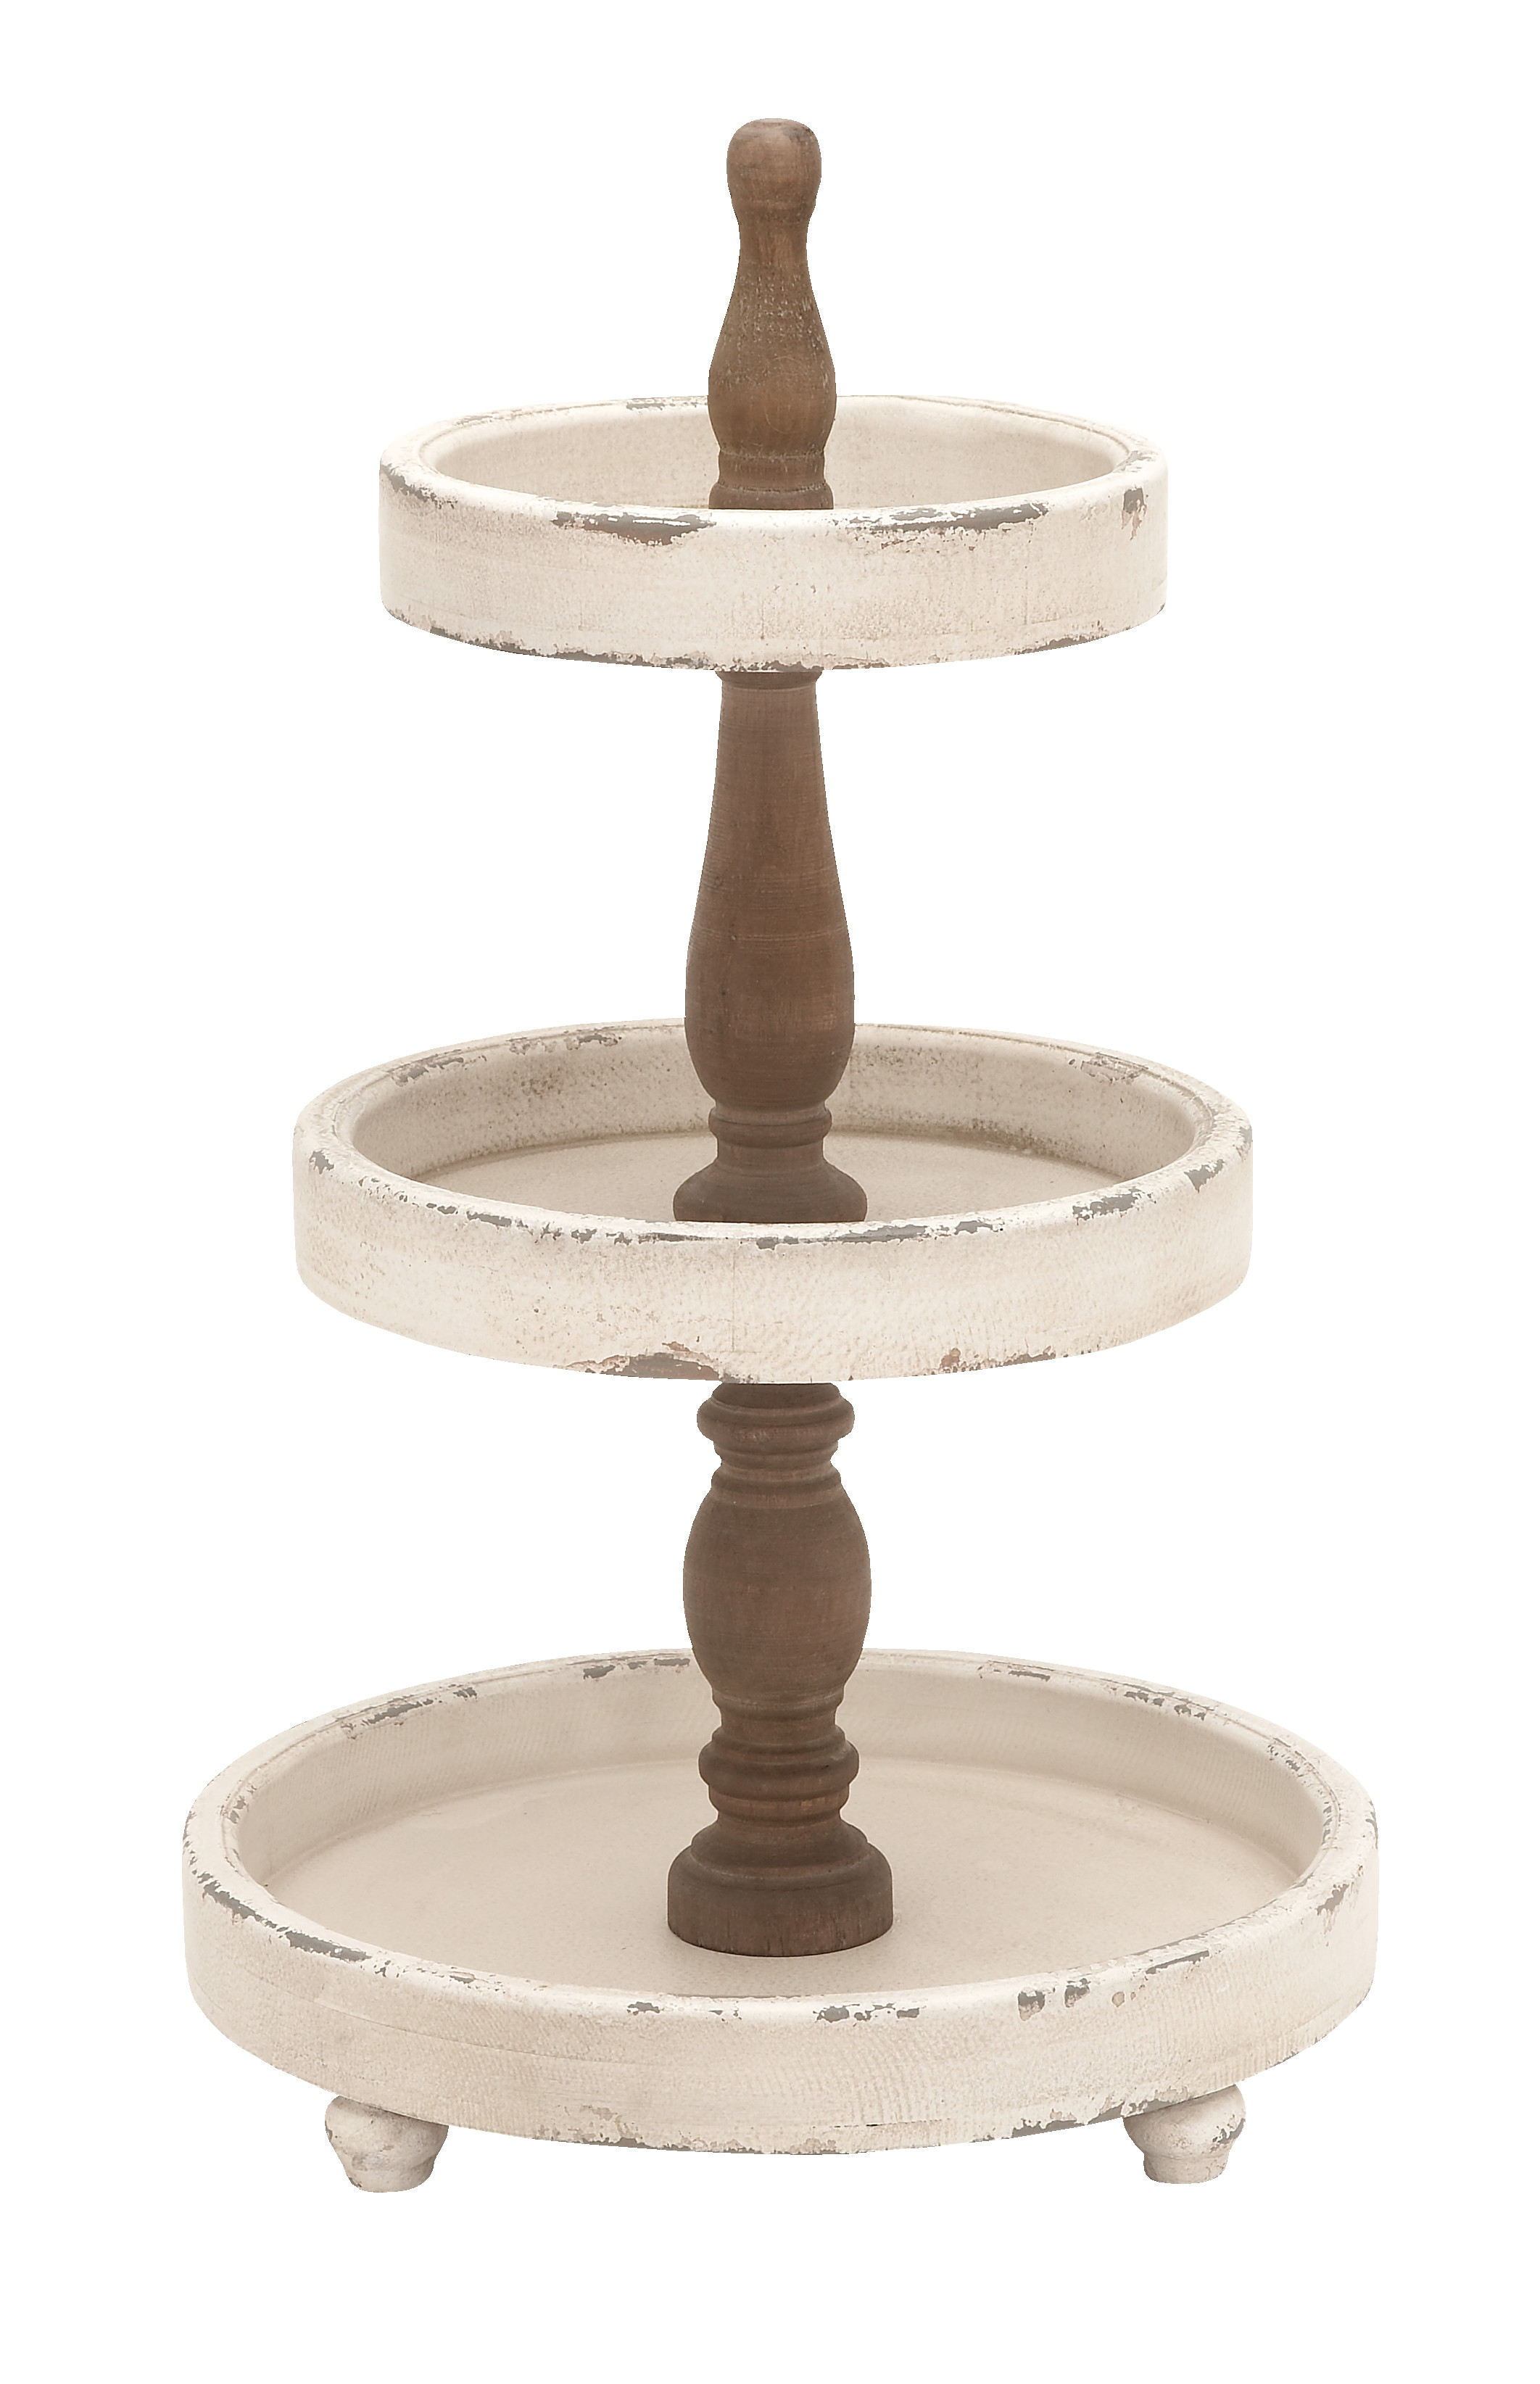 Shop Large, 3-Tier Distressed White and Natural Wood Round Serving Tray Stand from Walmart on Openhaus